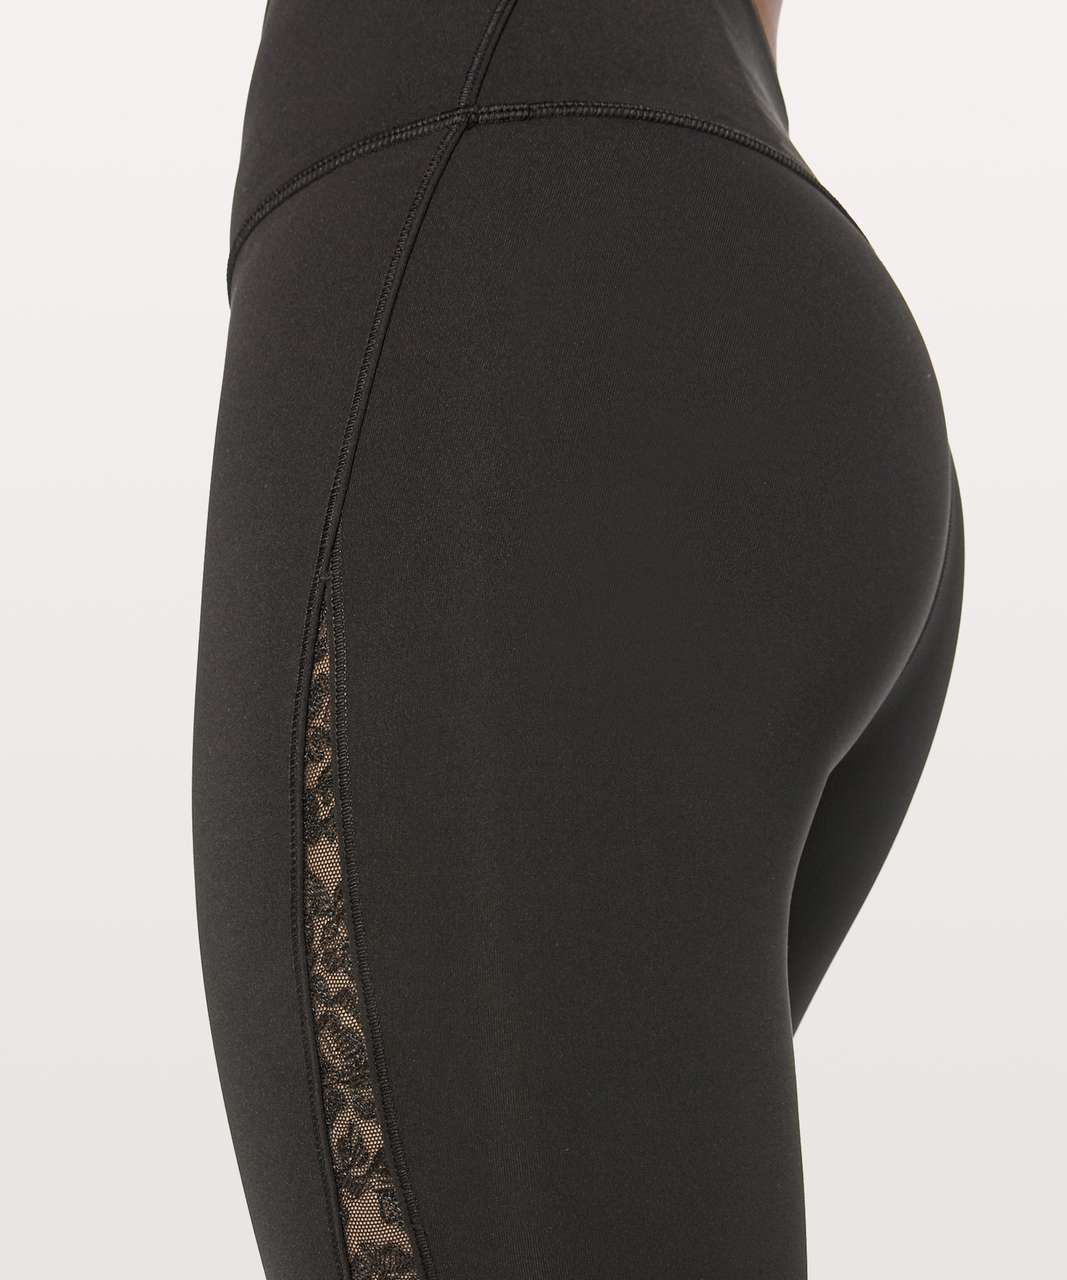 120cc5fa8d Lululemon Wunder Under Hi-Rise Tight Special Edition Embroidered 28 ...